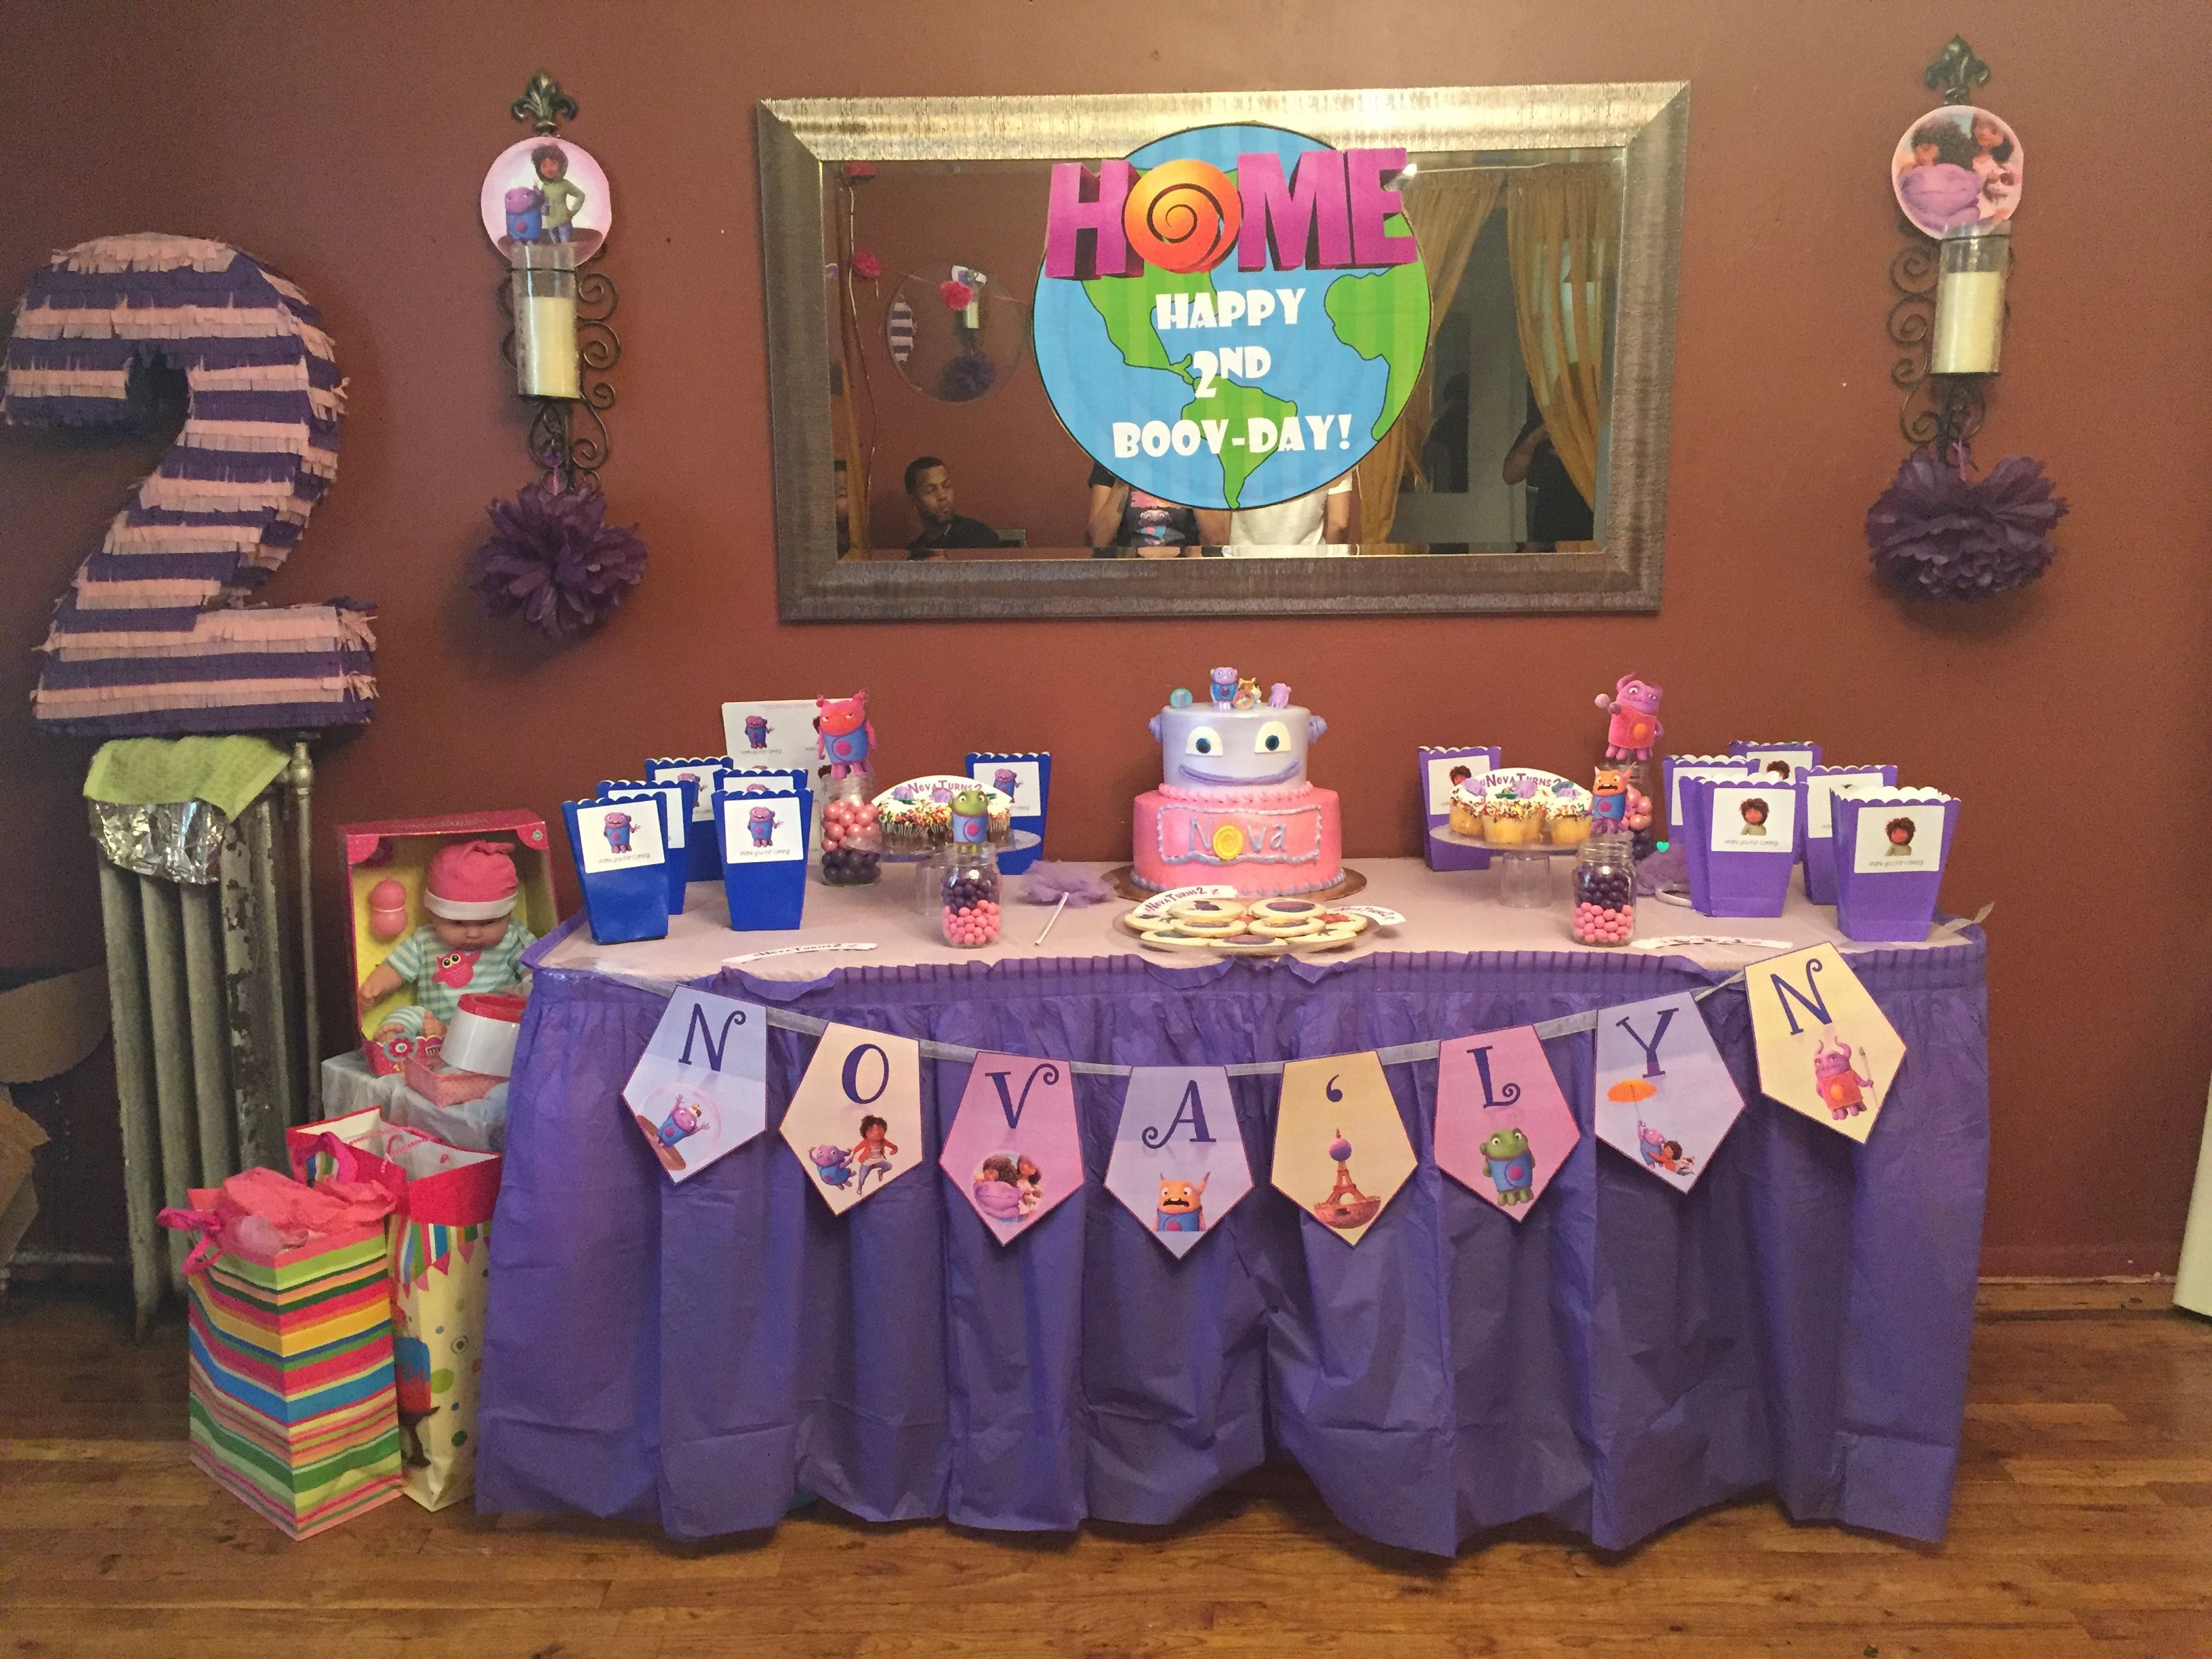 Piñata was also handmade & the banner with her name !! DIY is the way to live!